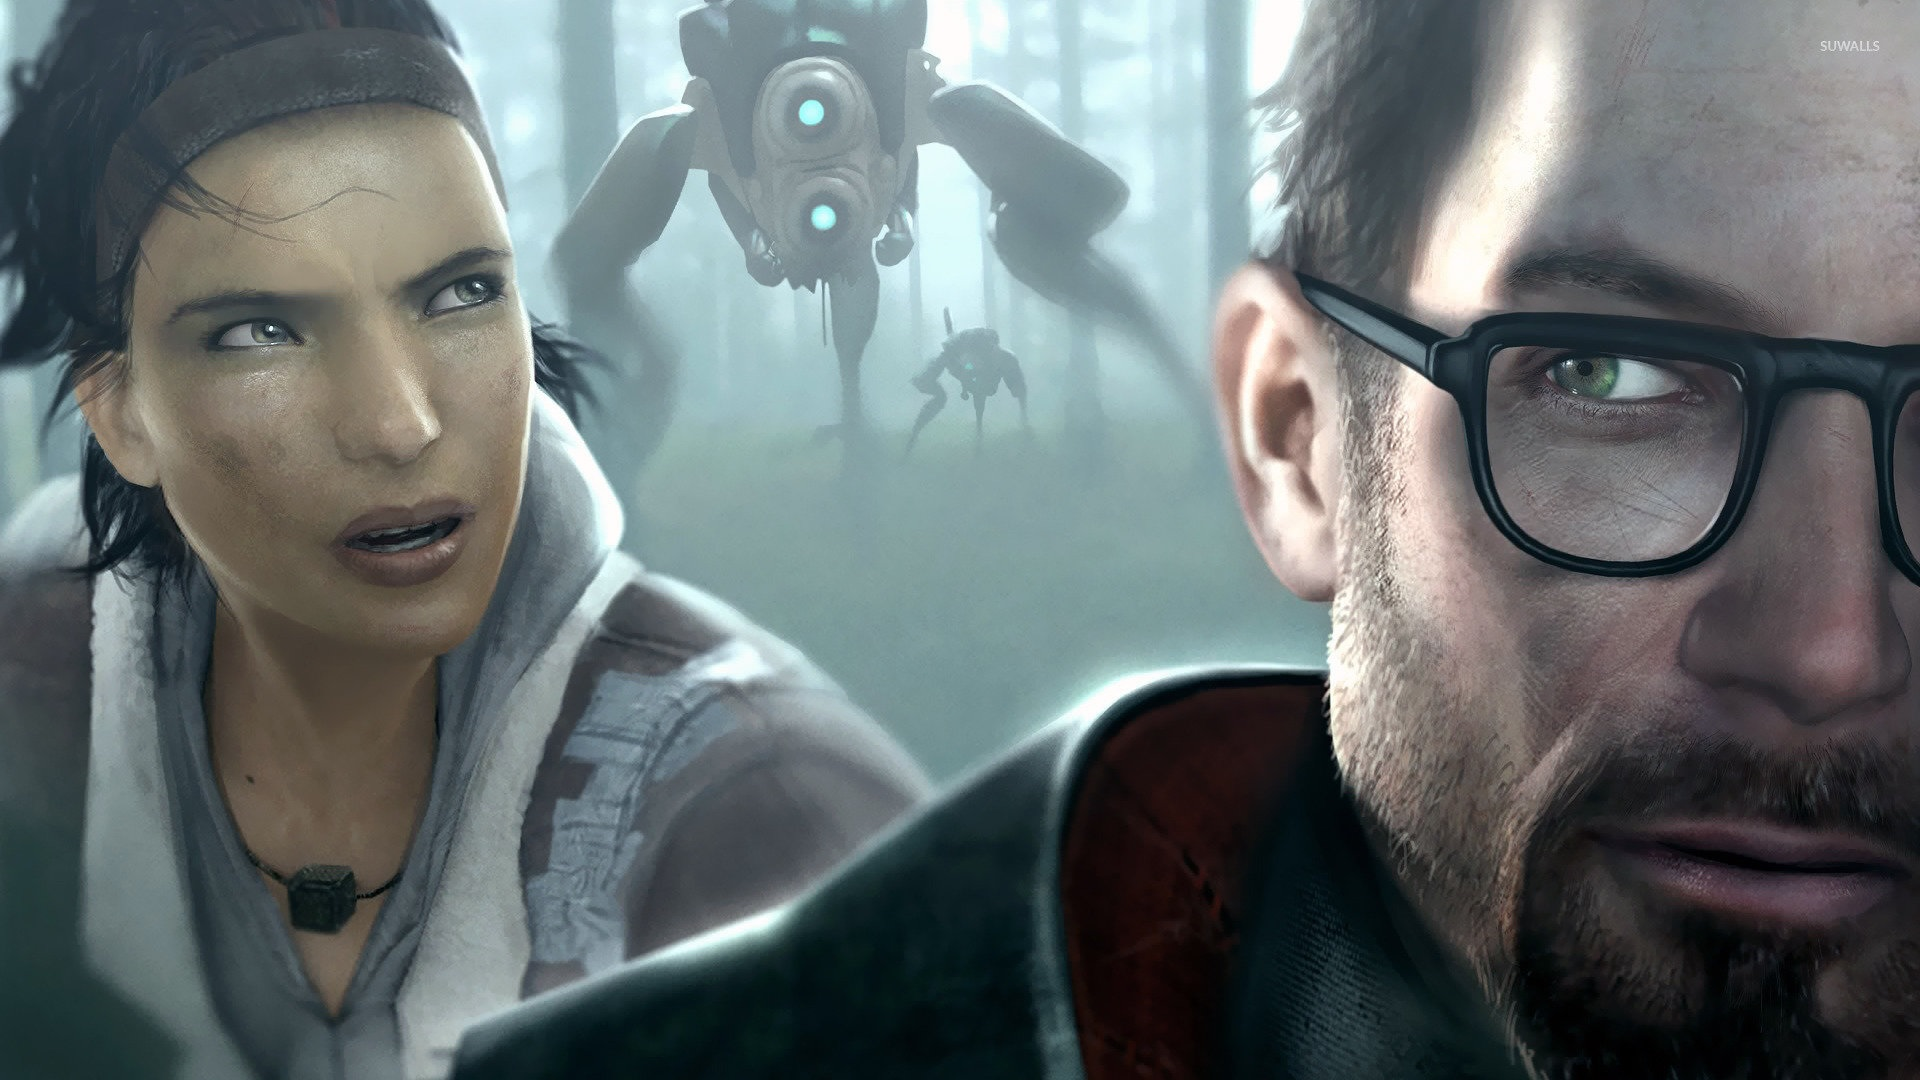 Half-Life | 7 Classic Games That Should Be Revived | Gammicks